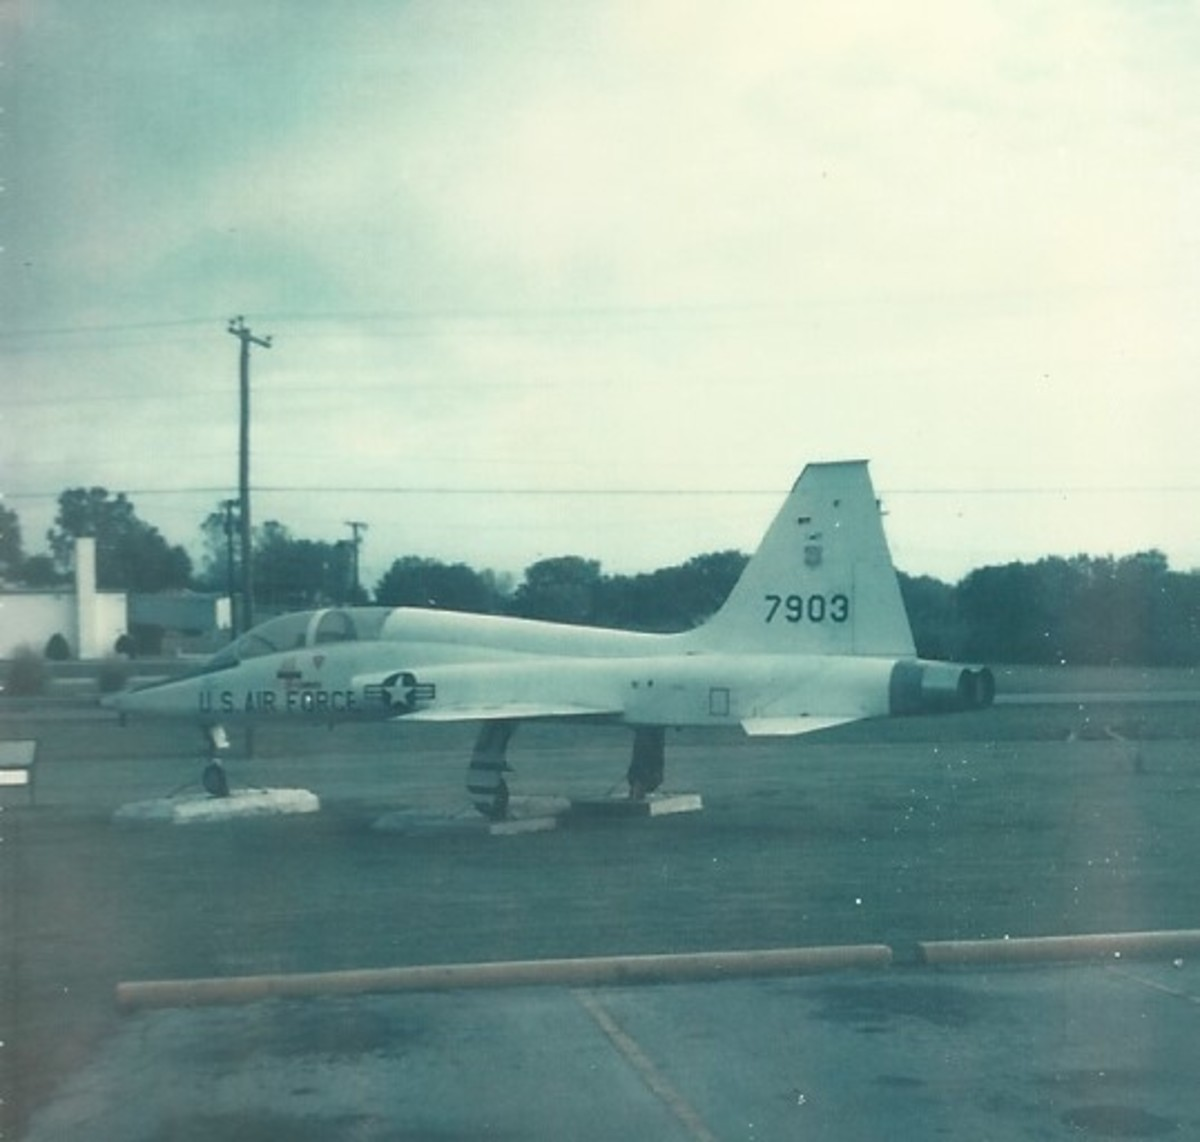 A USAF T-38 on display at Medina AFB, TX, 1978.